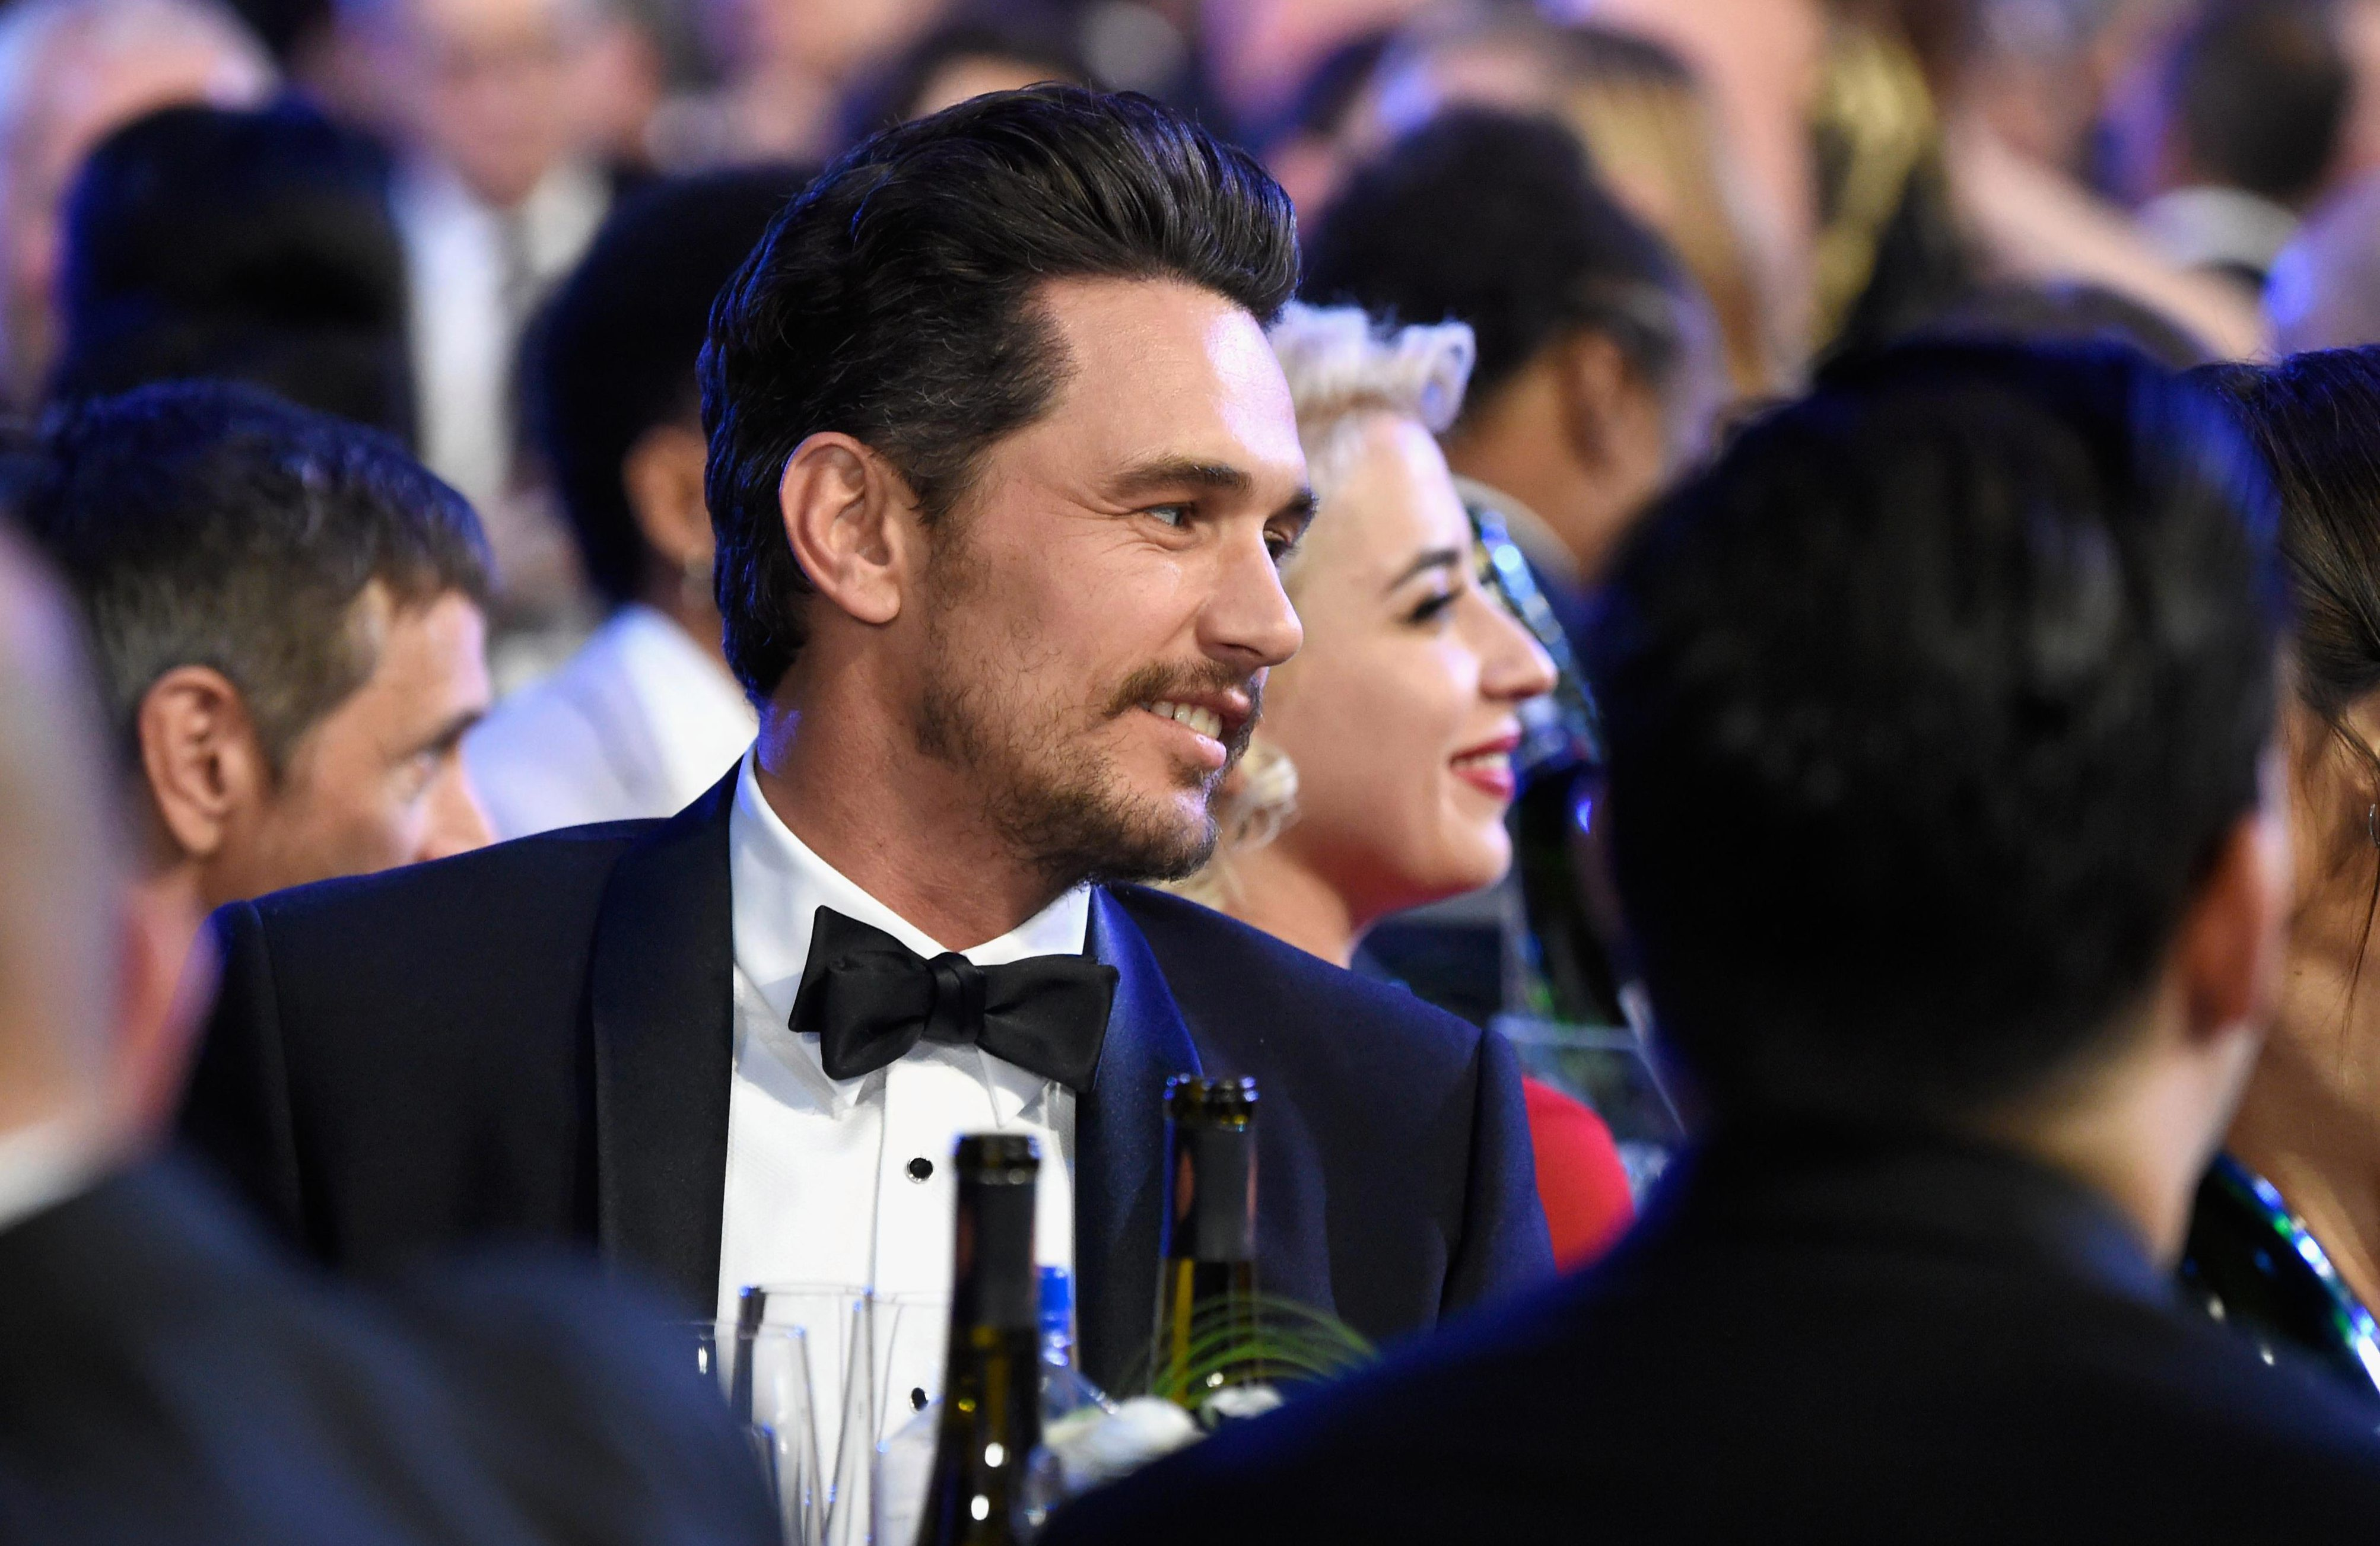 James Franco attends SAG Awards following sexual misconduct claims